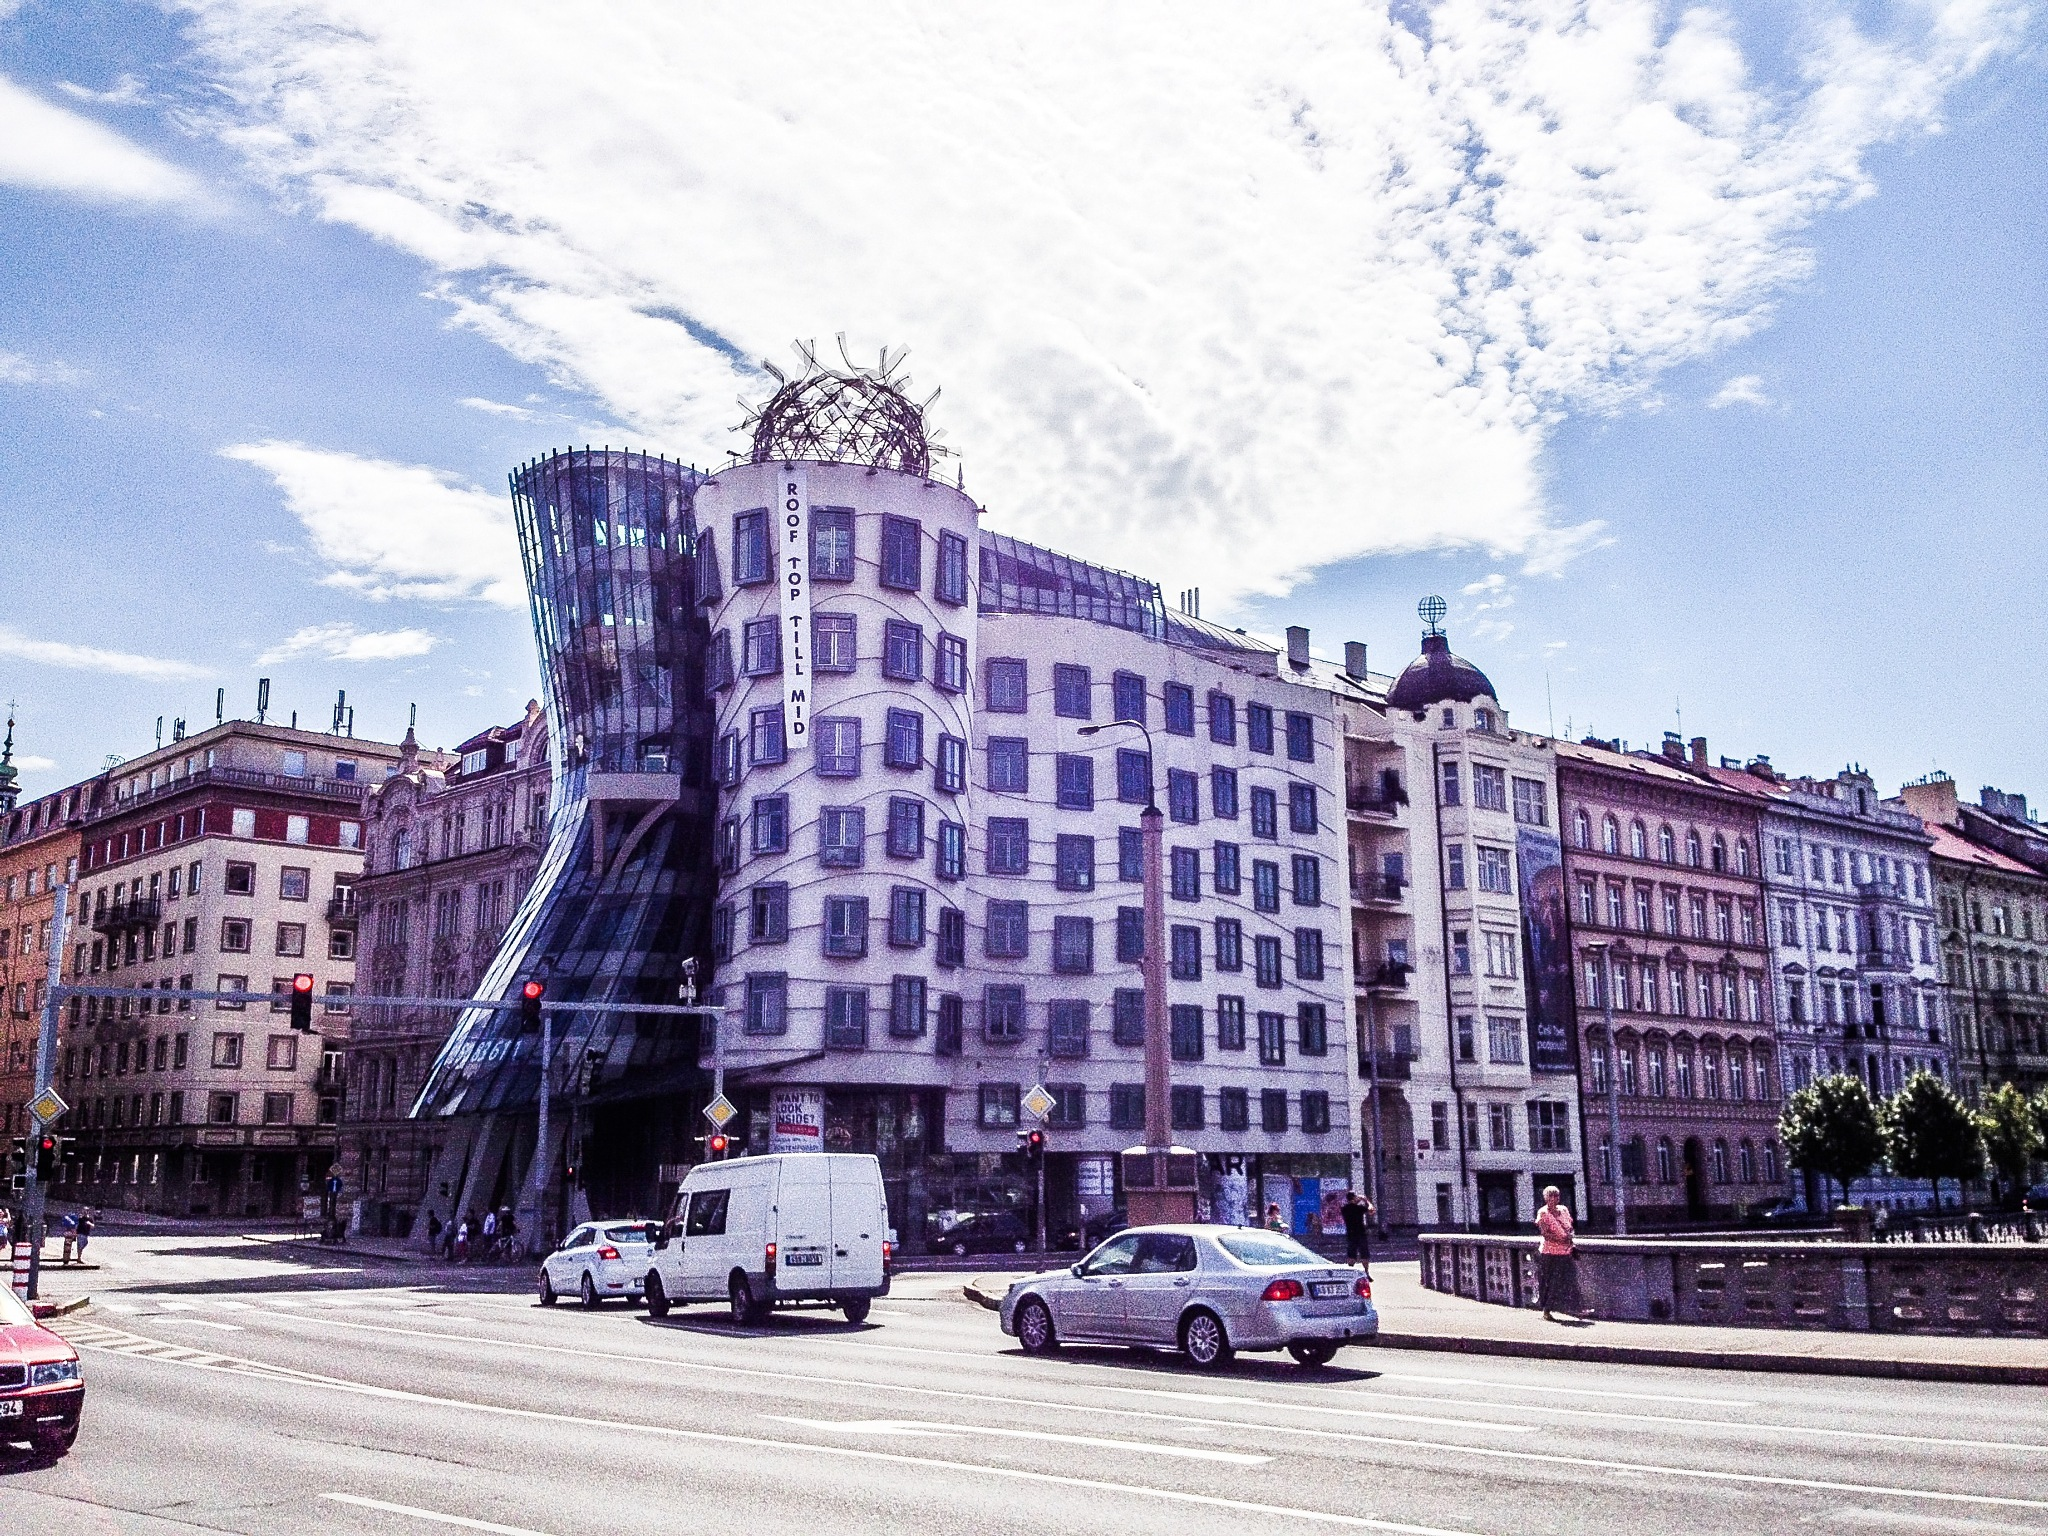 Dancing House by Guendalino Marchesi